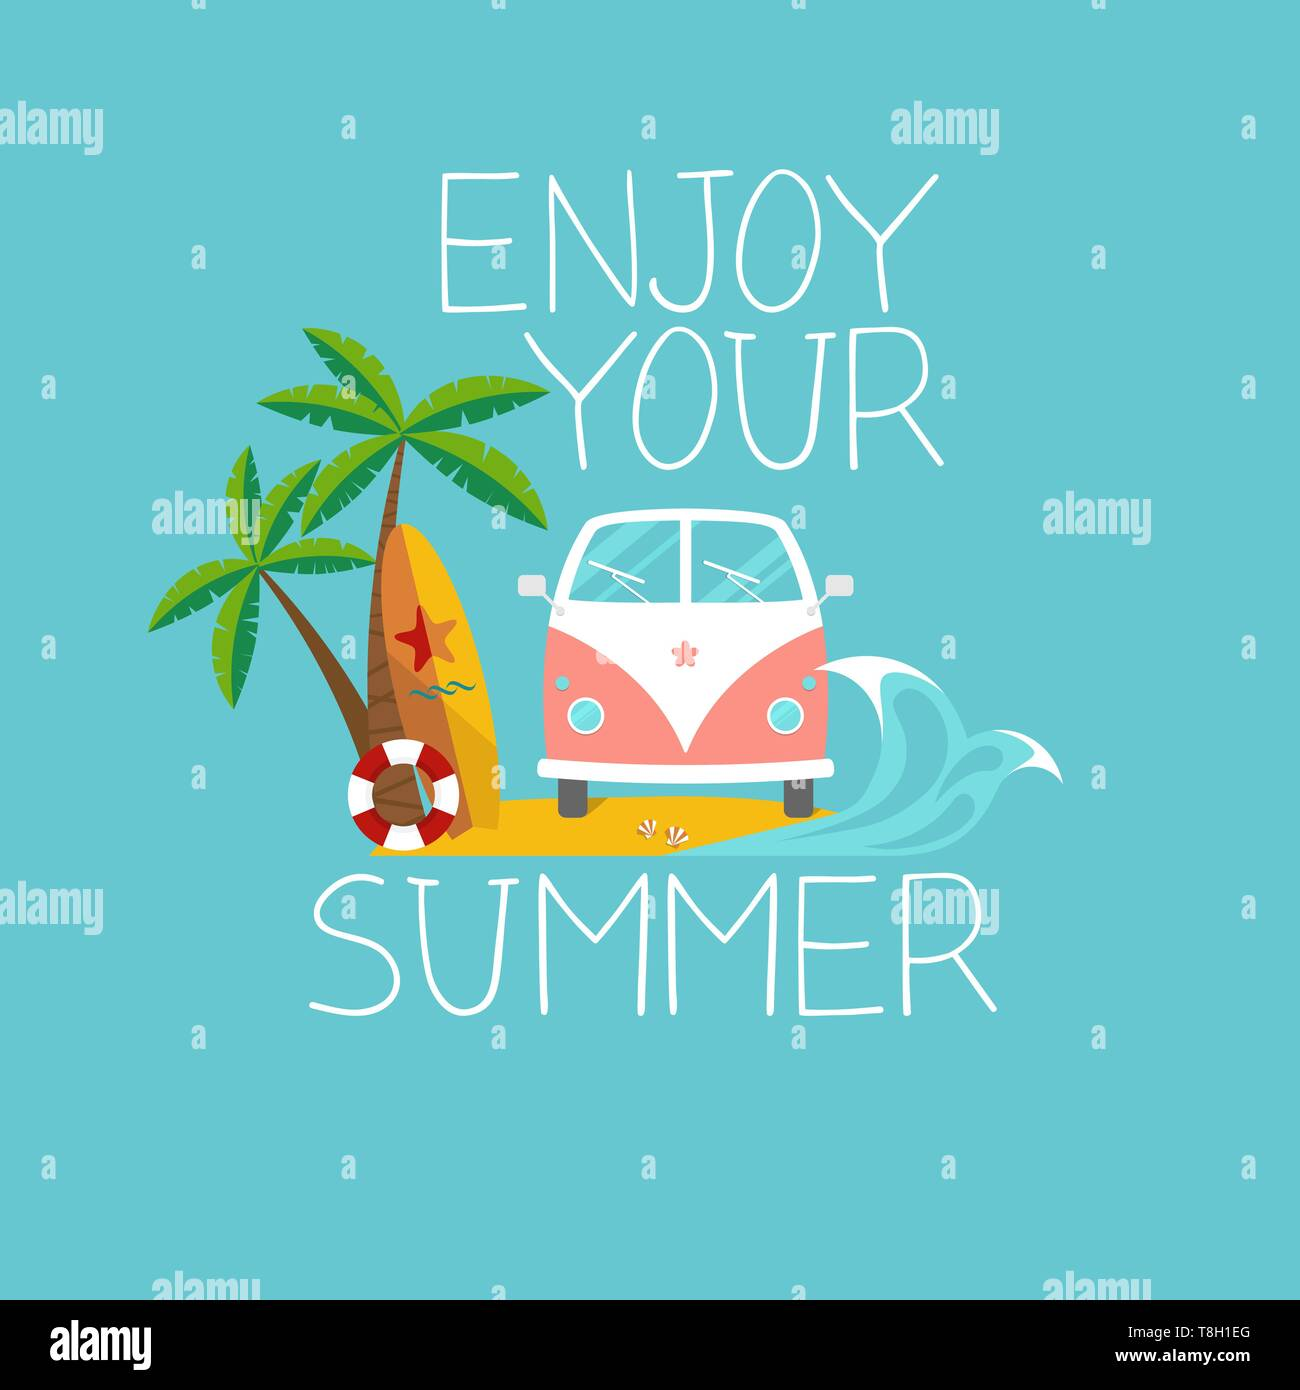 flat summer background with retro van on the beach, surfboard, palms and slogan 'enjoy your summer' - Stock Image